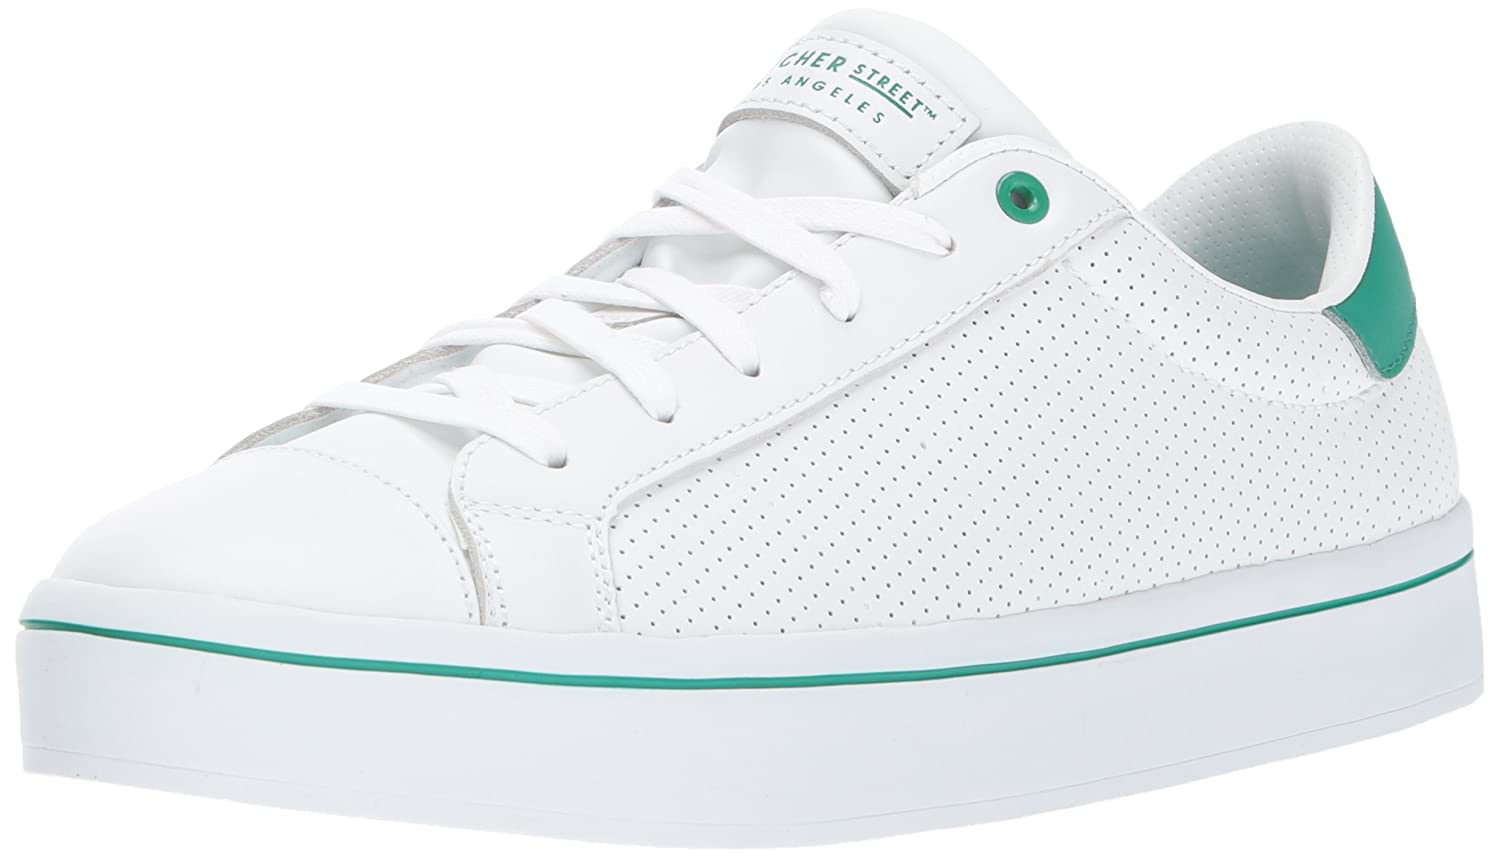 Skechers928 - Hi-Lite - Perf-ection Damen